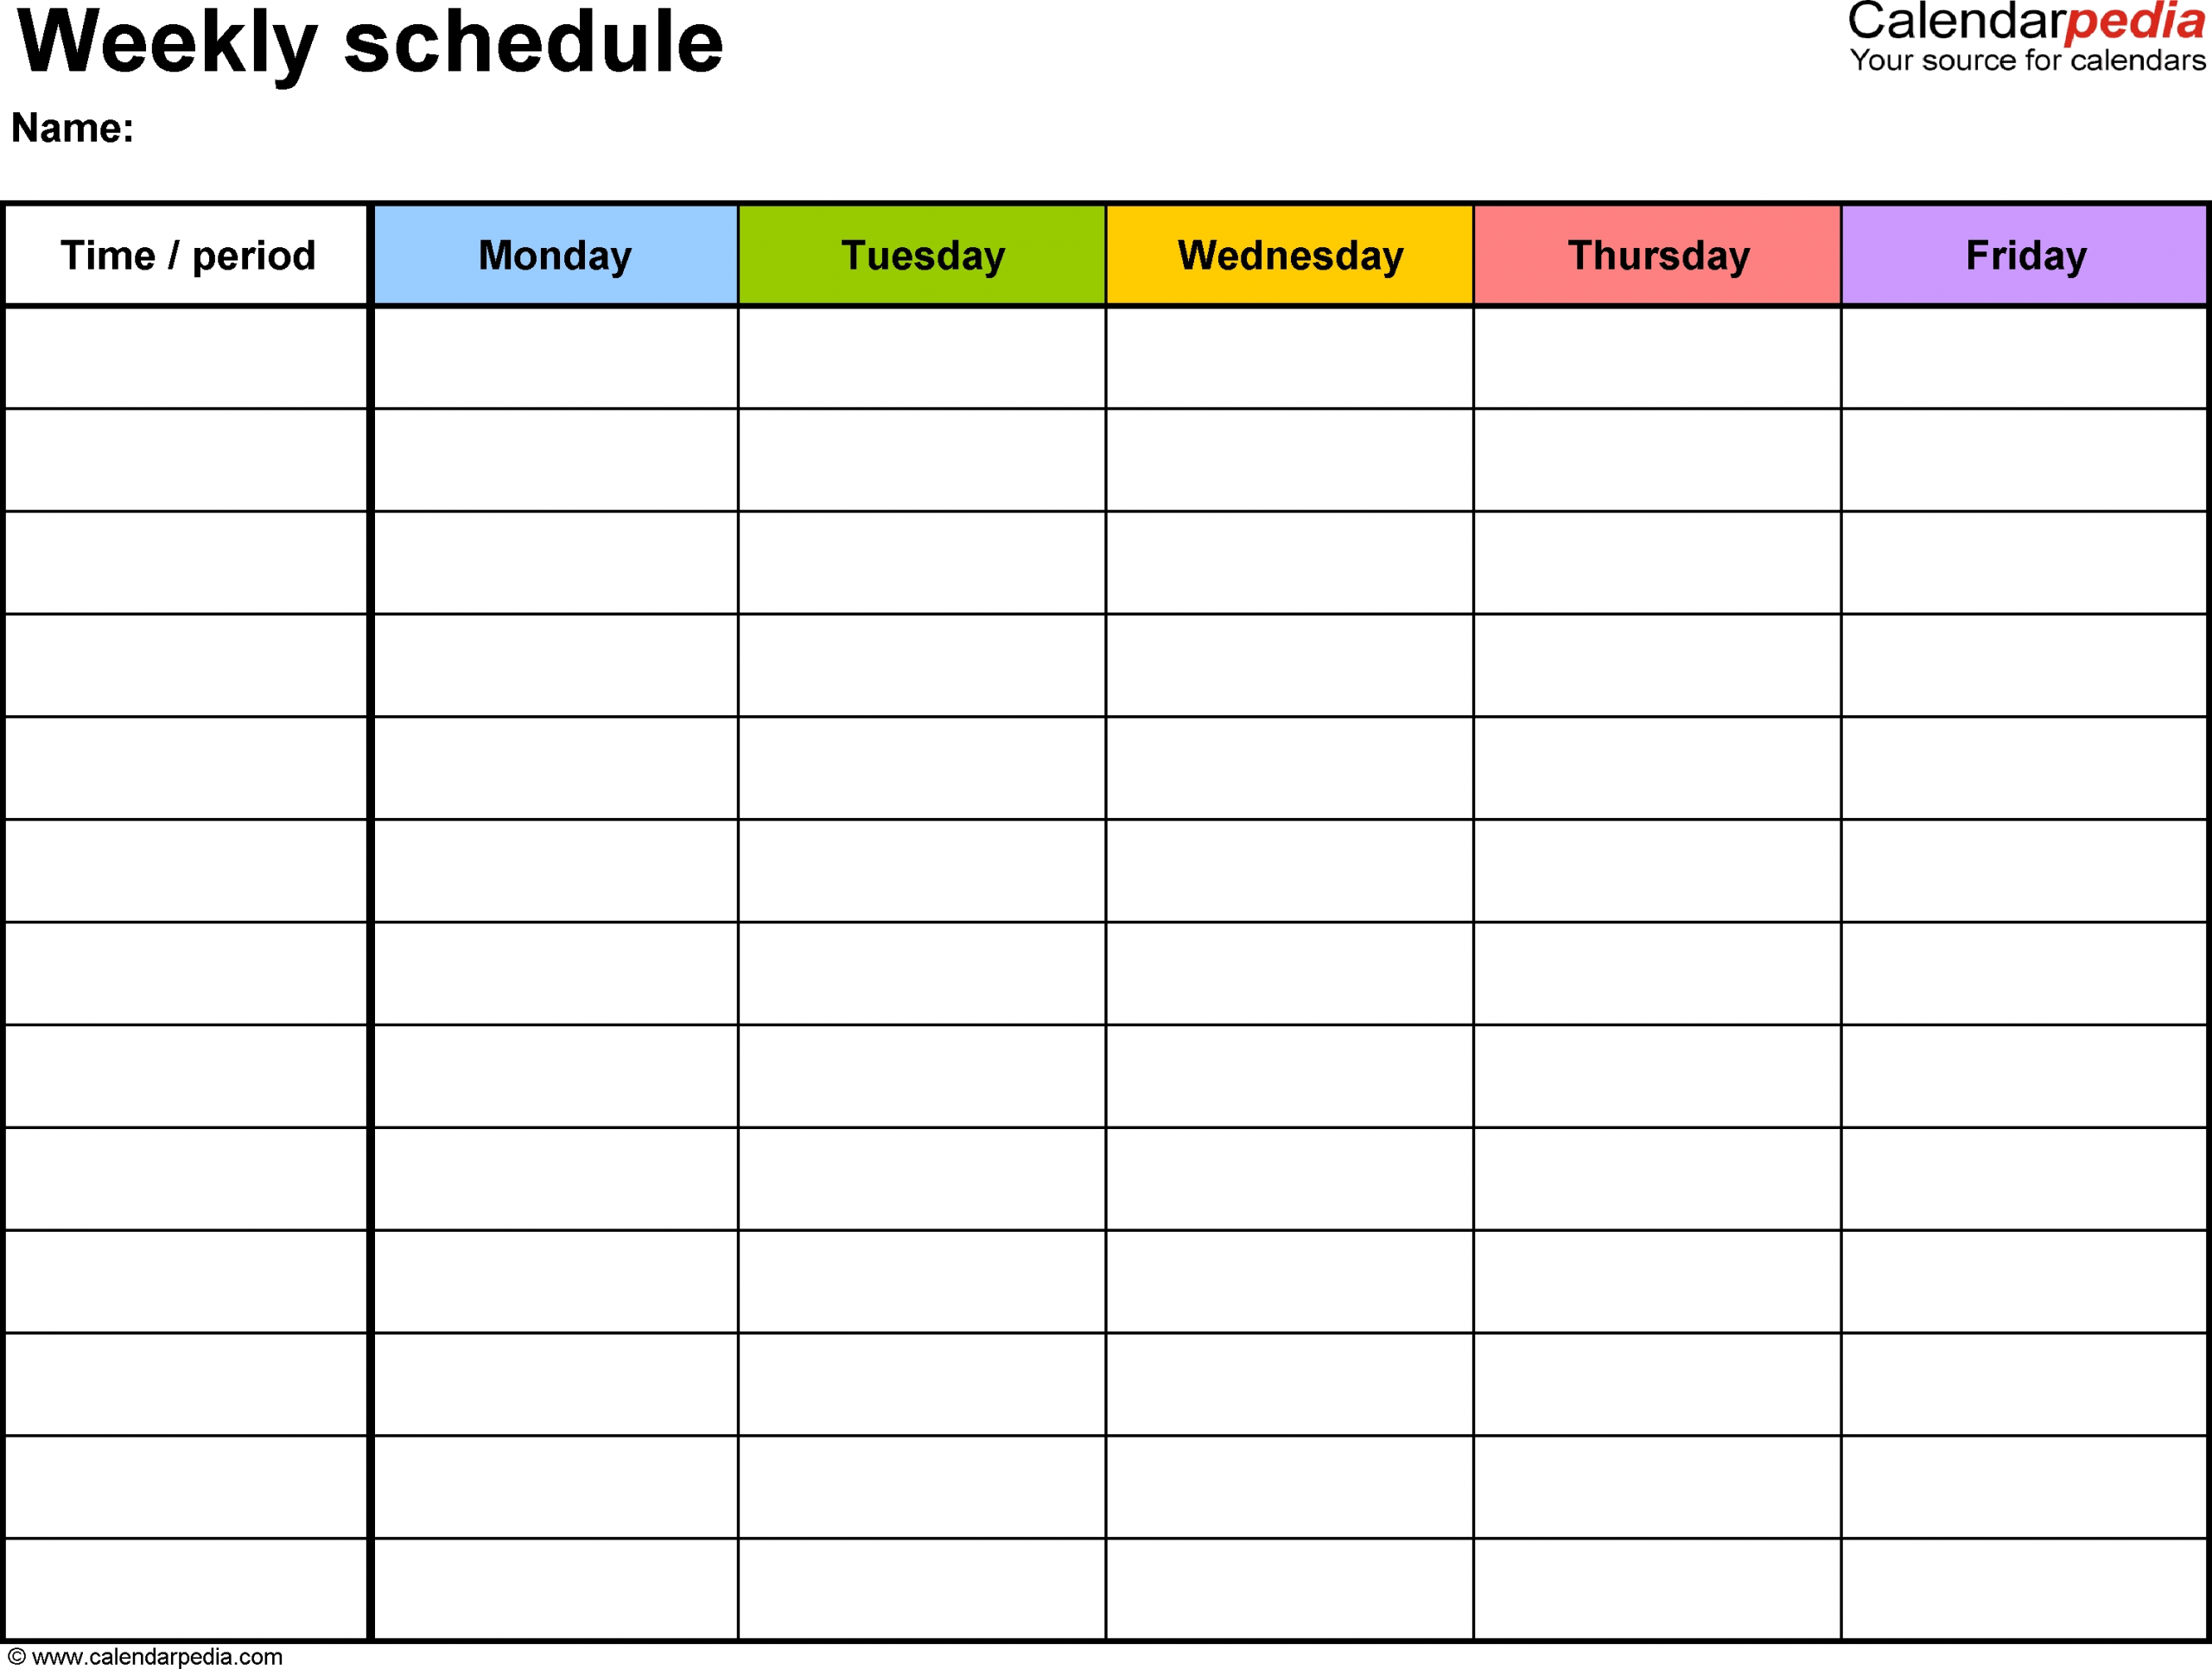 Pdf Daily Calendar With Time Slots – Calendar Inspiration Free Weekly Agenda Templates With Time Slots